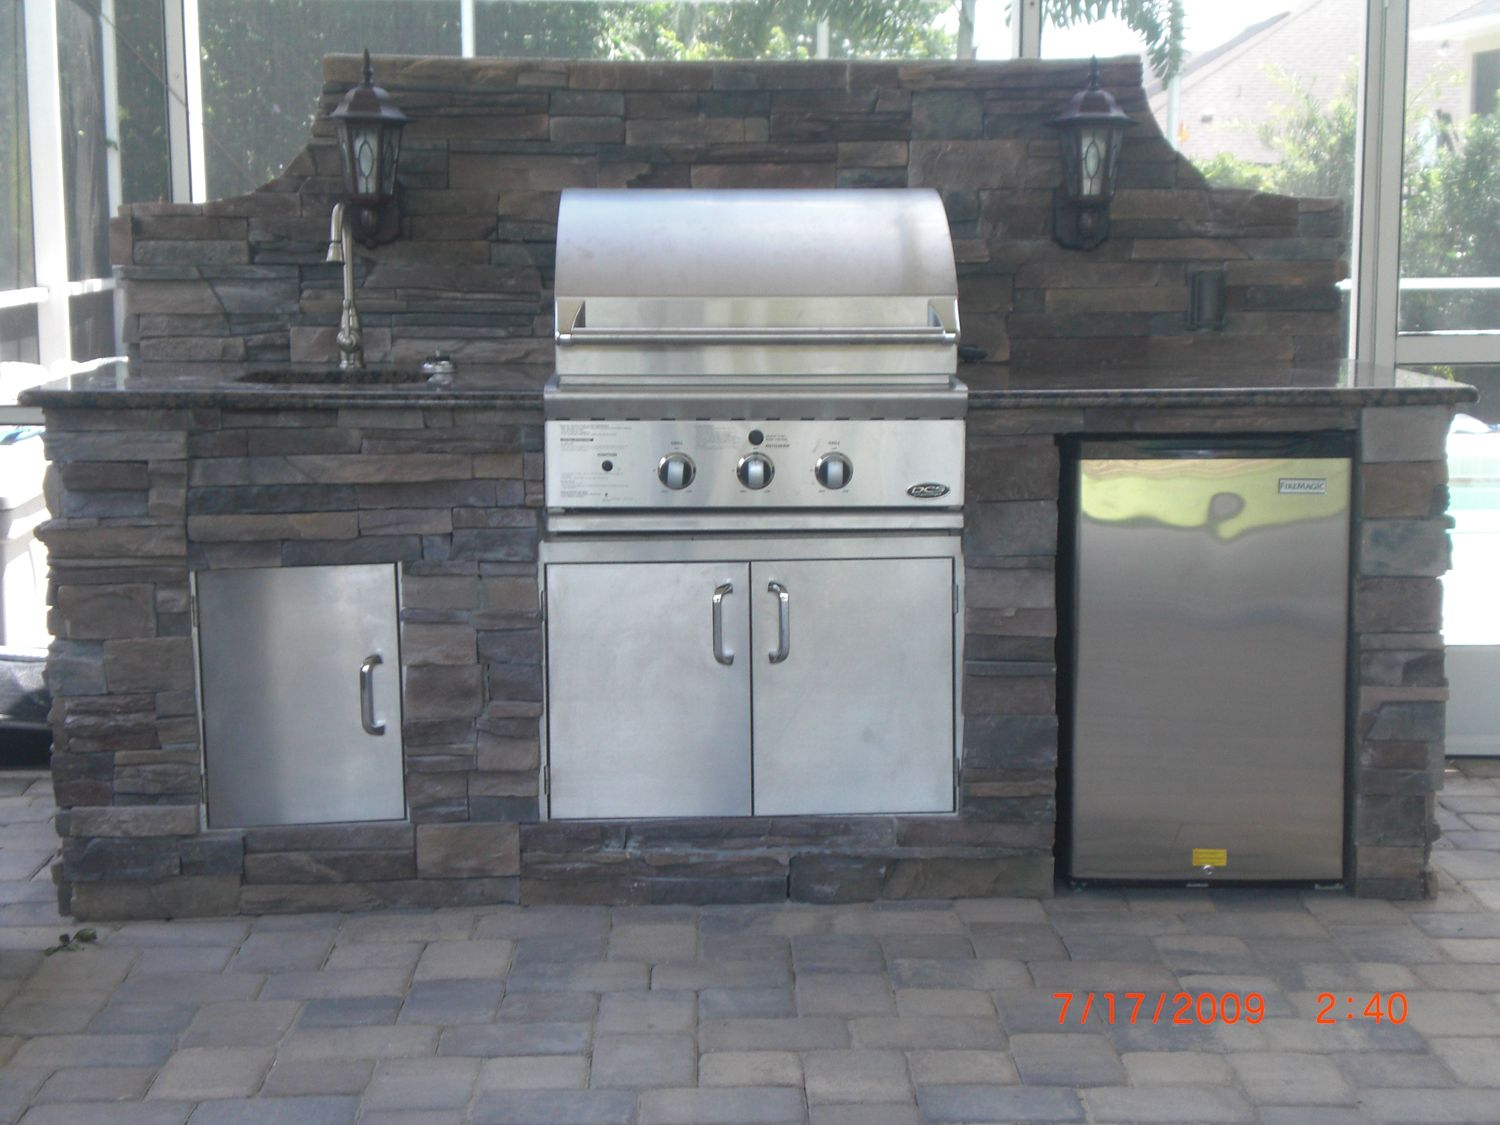 outdoor kitchens orlando kitchen cabinet knobs cheap grill orlandofl jpg 1500 1125 patio ideas we specialize in custom 18 years serving cfl free estimates 947 7737 inc